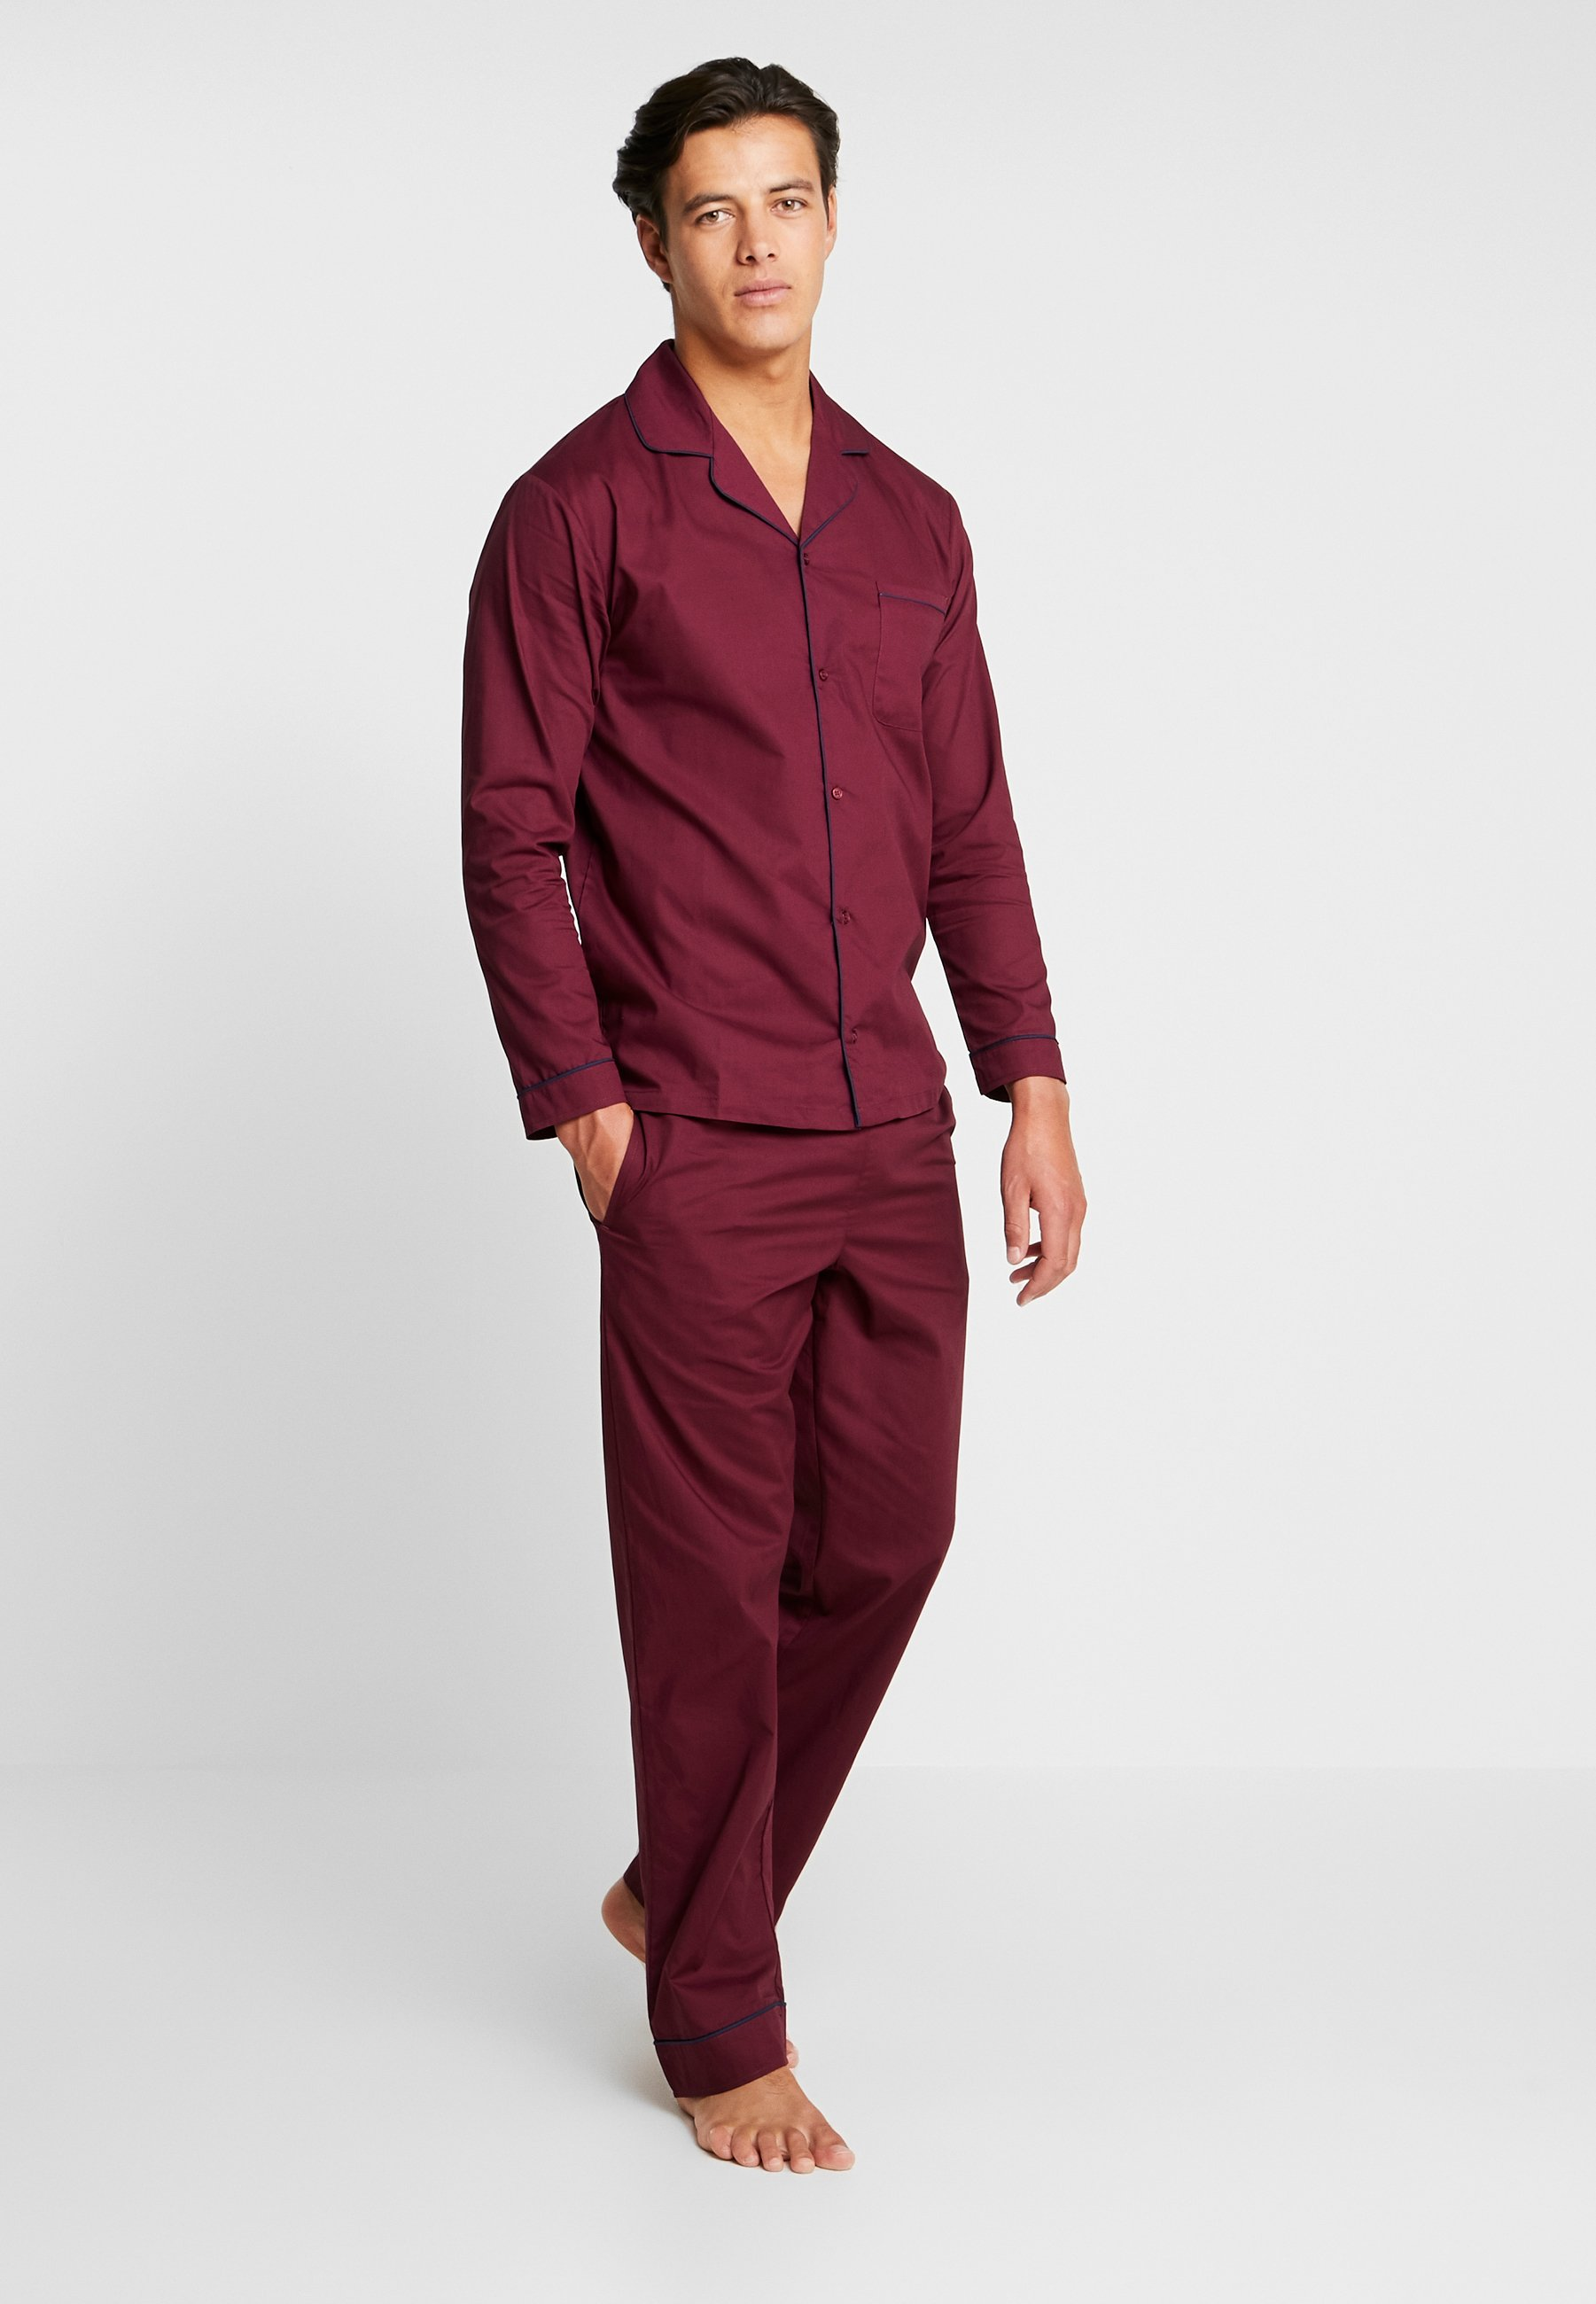 PyjamaDark One Red Pier One Pier PyjamaDark Nm0wv8nO